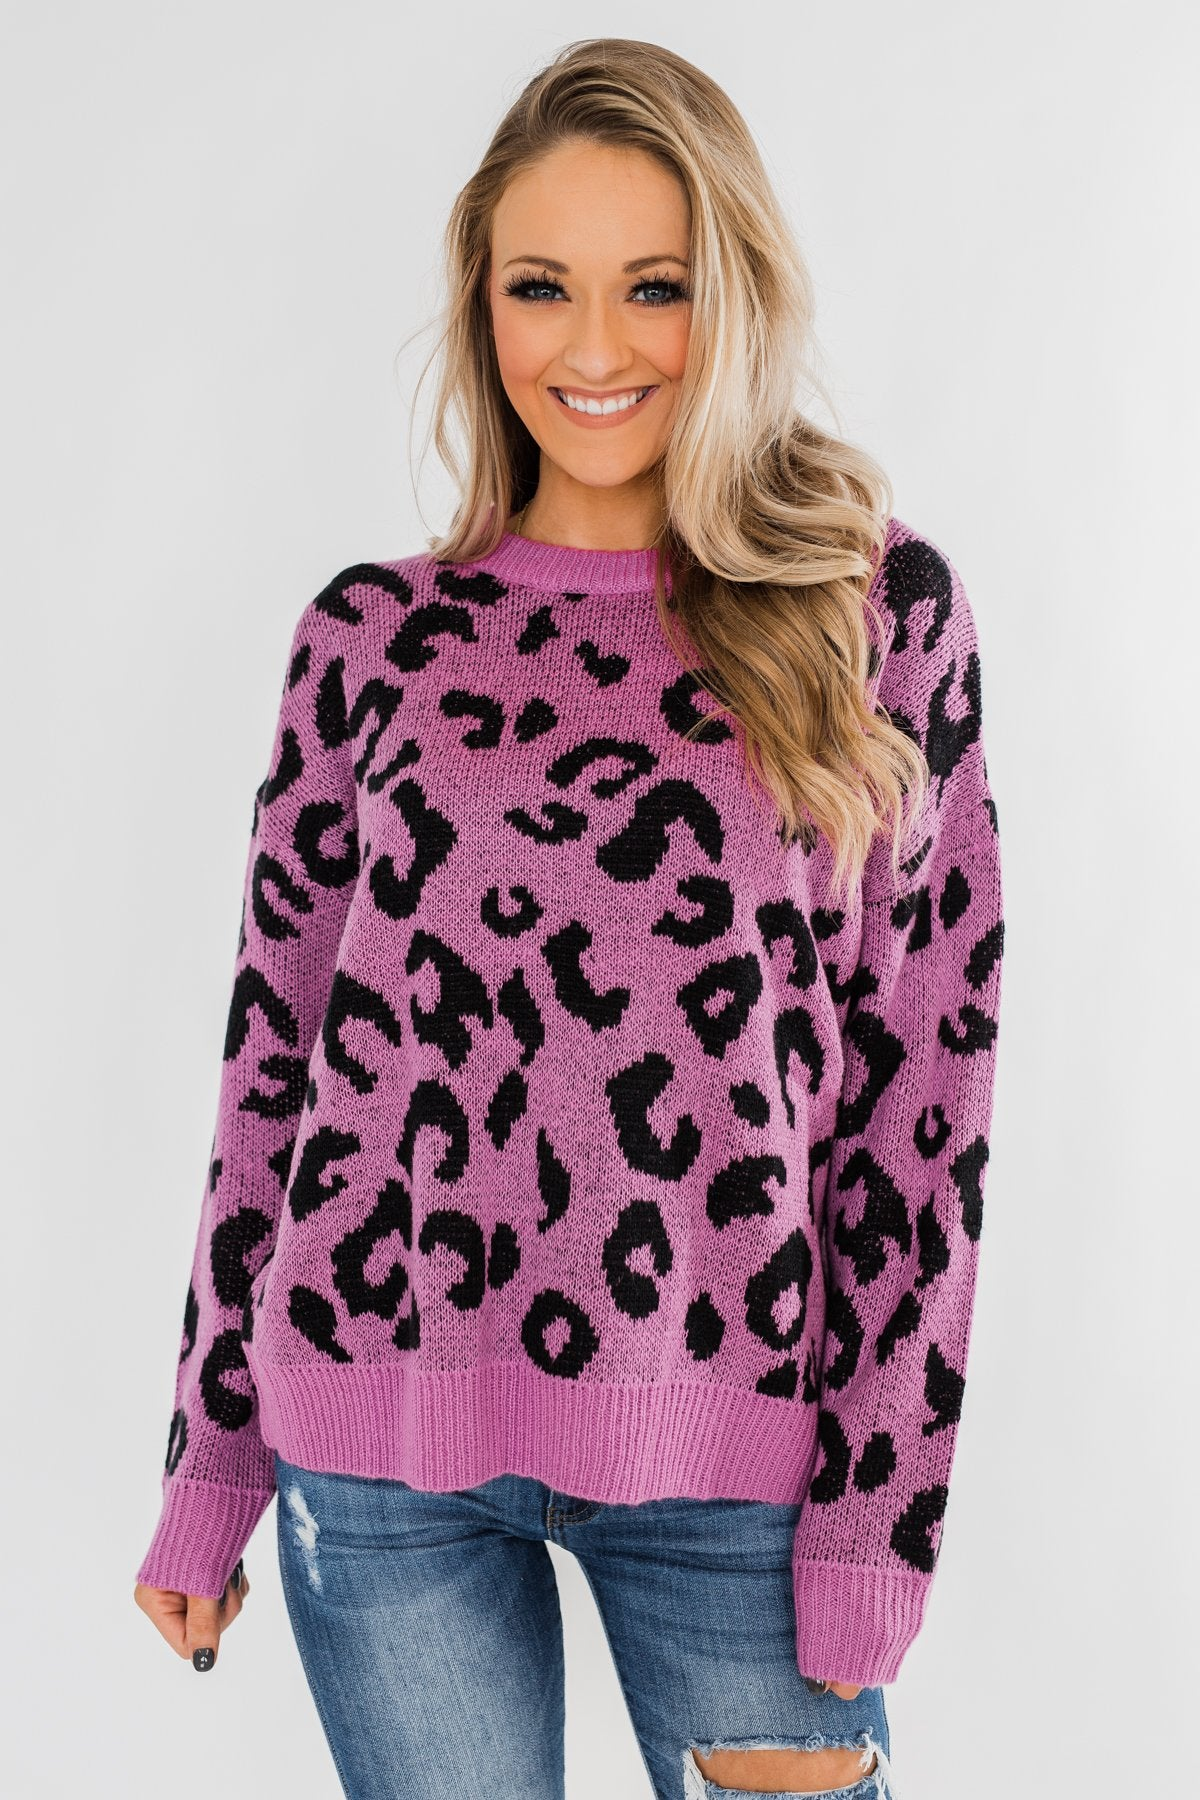 Lead Me On Round Neck Knit Sweater, Purple